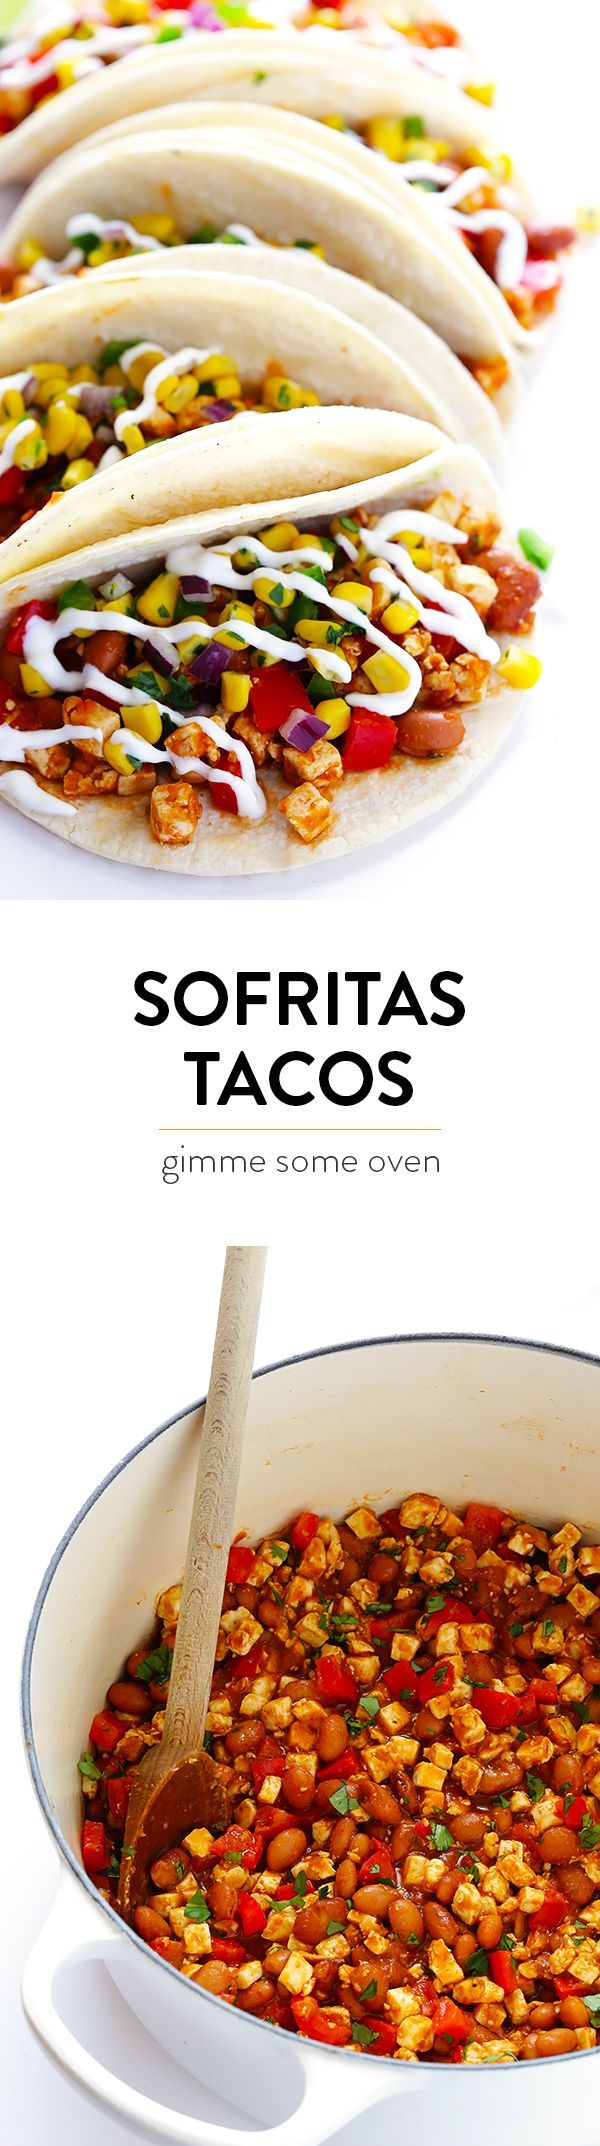 Chipotle Sofritas (Tofu) Tacos are quick and easy to prepare, and made with a heavenly Mexican chipotle tomato sauce. Plus, they're also naturally gluten-free and vegan!  